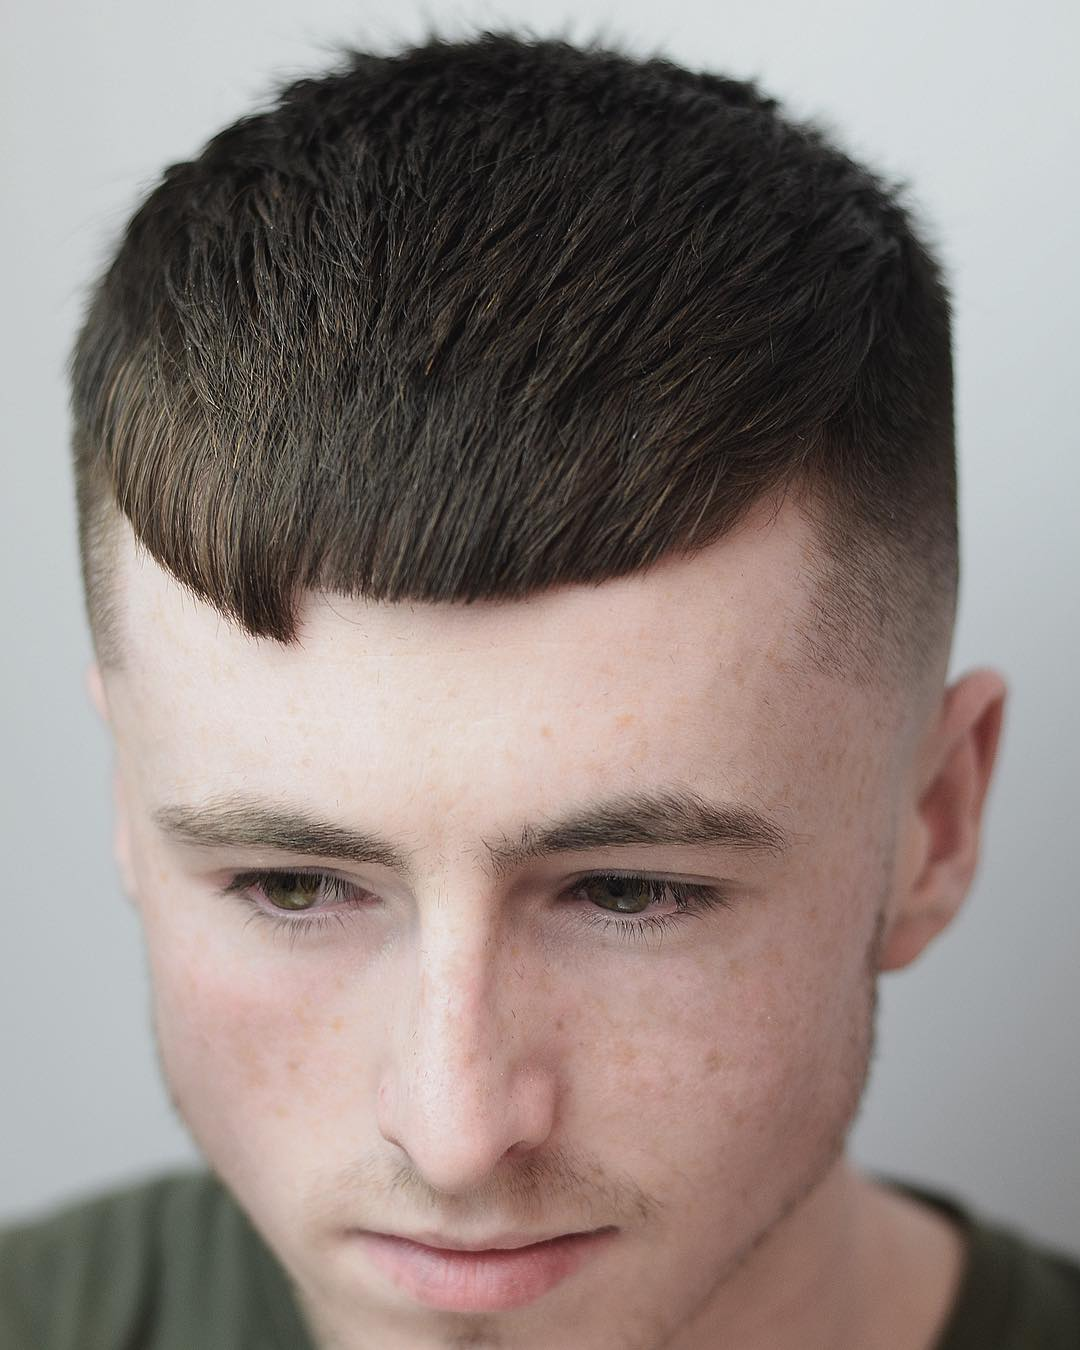 Short Stylish Men's Haircuts